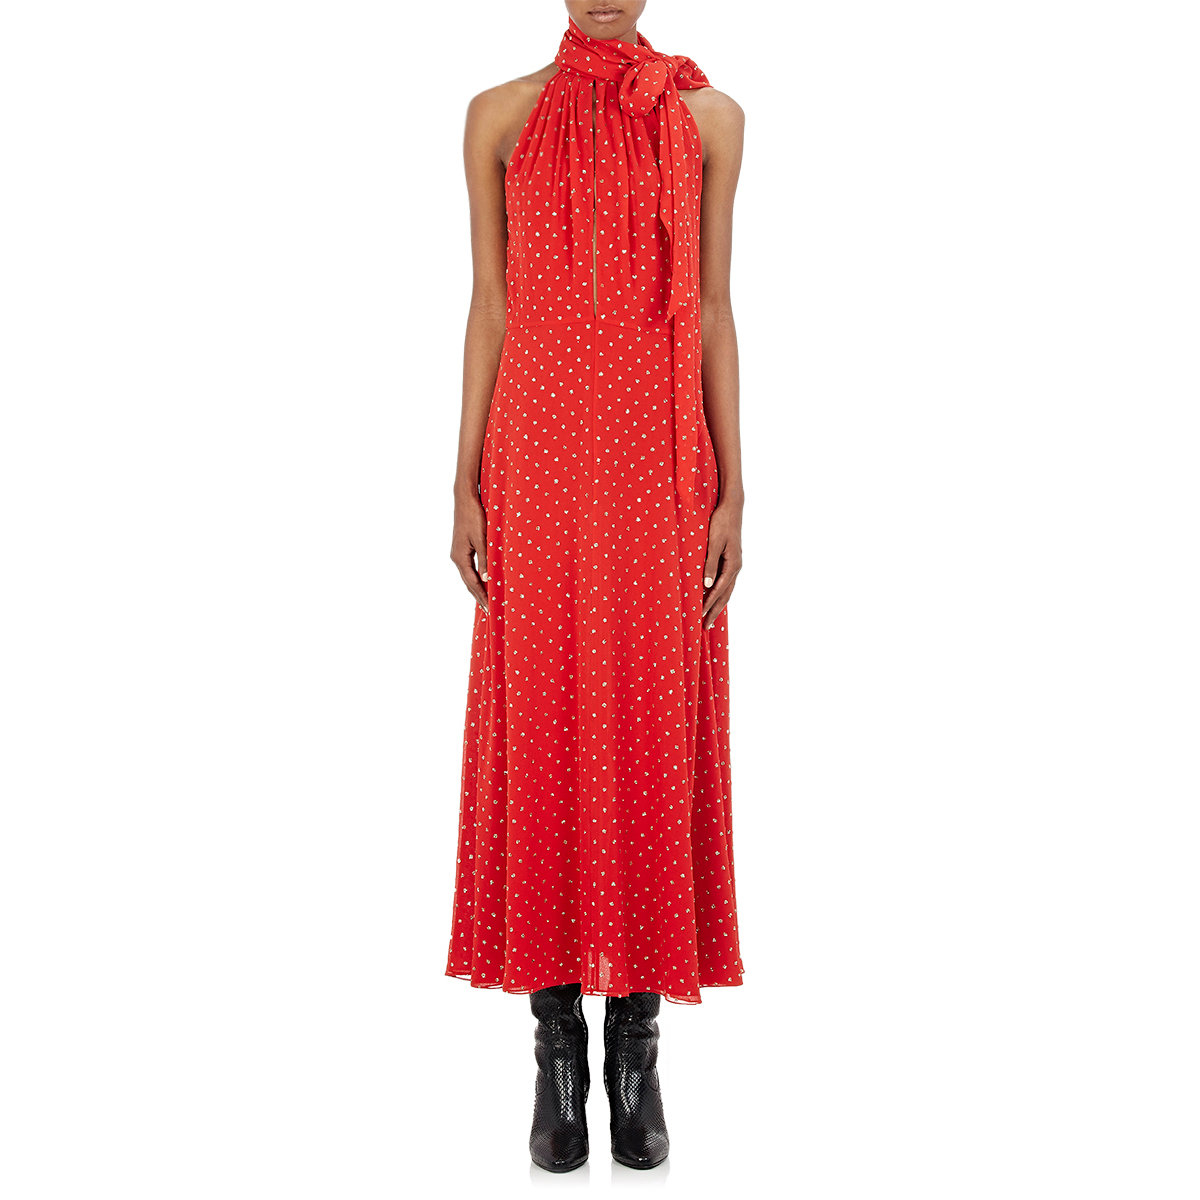 Simple No 1 Jenny Packham Womens Pink Sequin Glitter Maxi Dress From